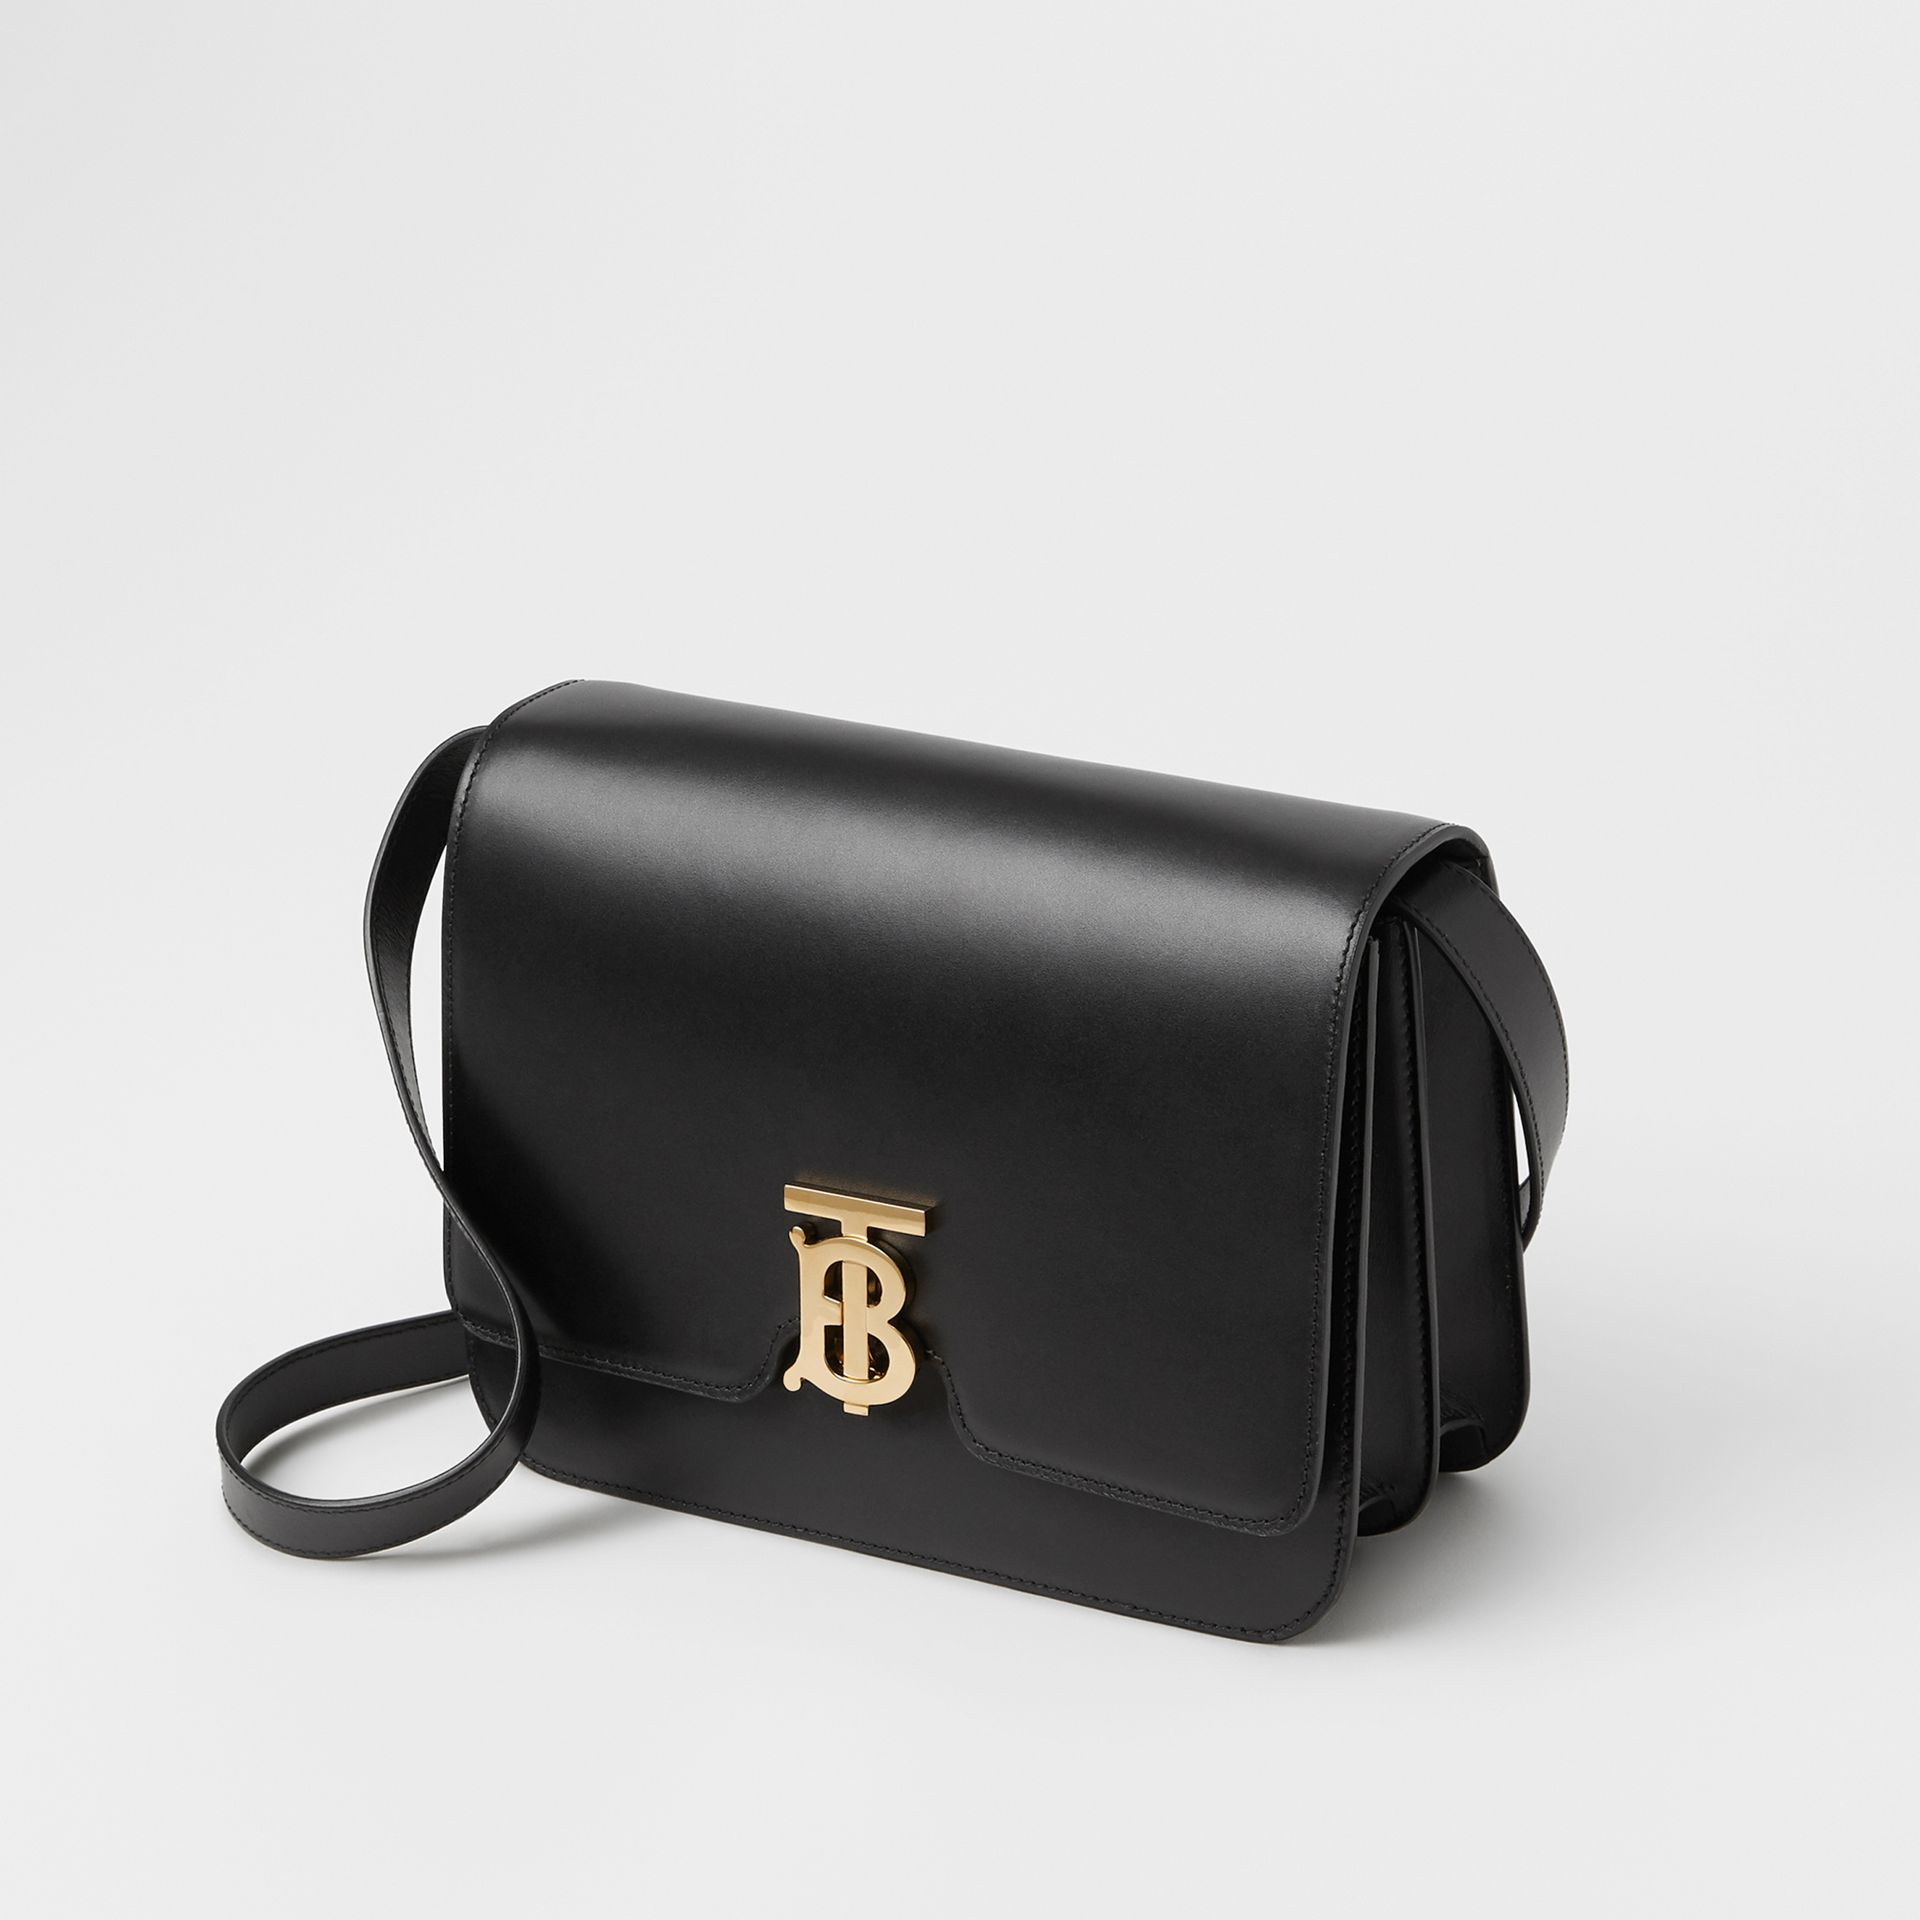 Medium Leather TB Bag in Black - Women | Burberry Canada - gallery image 4